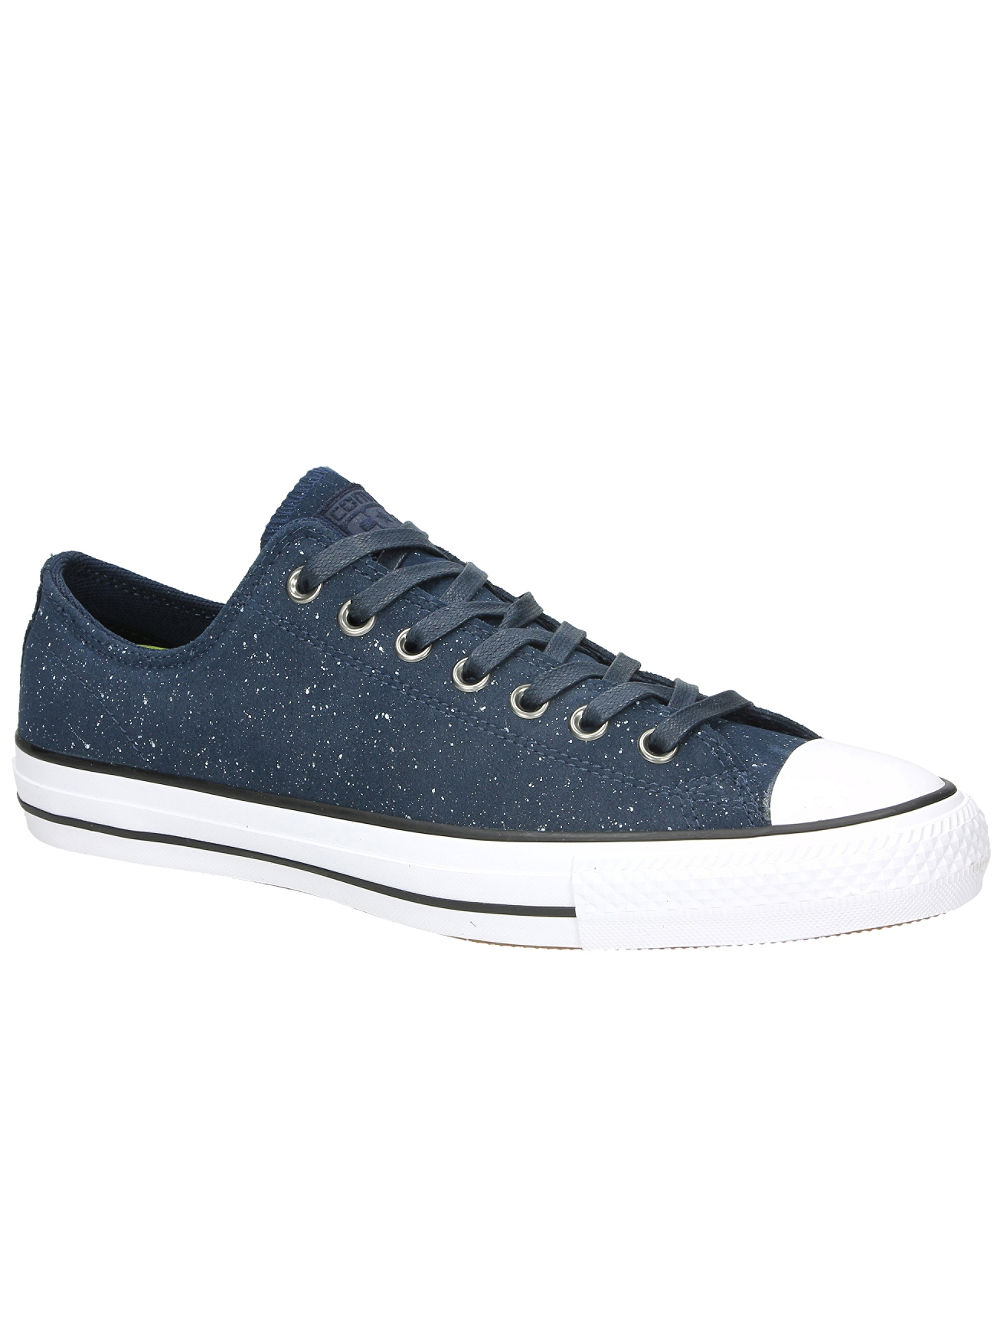 Buy Converse Chuck Taylor All Star Pro Ox Skate Shoes online at blue ... 8edf94d50